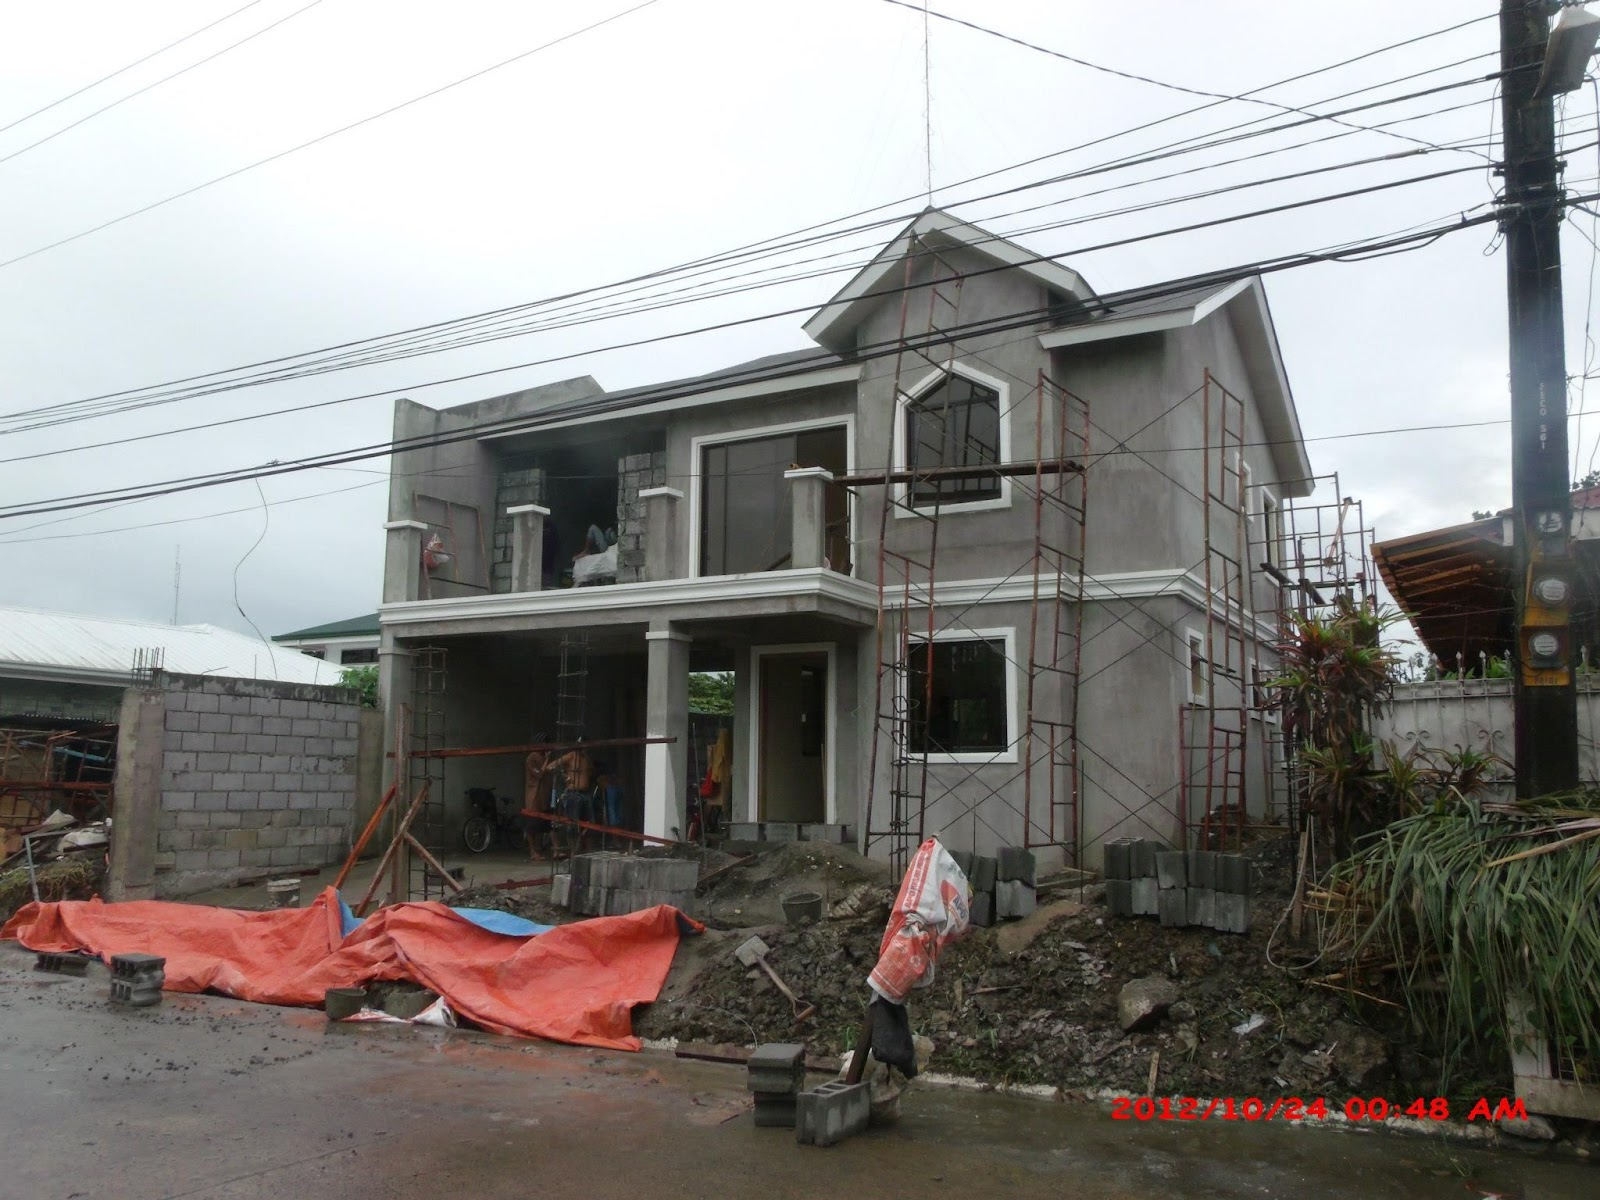 house plans home builders home builder house builders house builder house design house designs philippines house design phillipine house design home design modern house design philippine house designs dream houses house design philippines iloilo